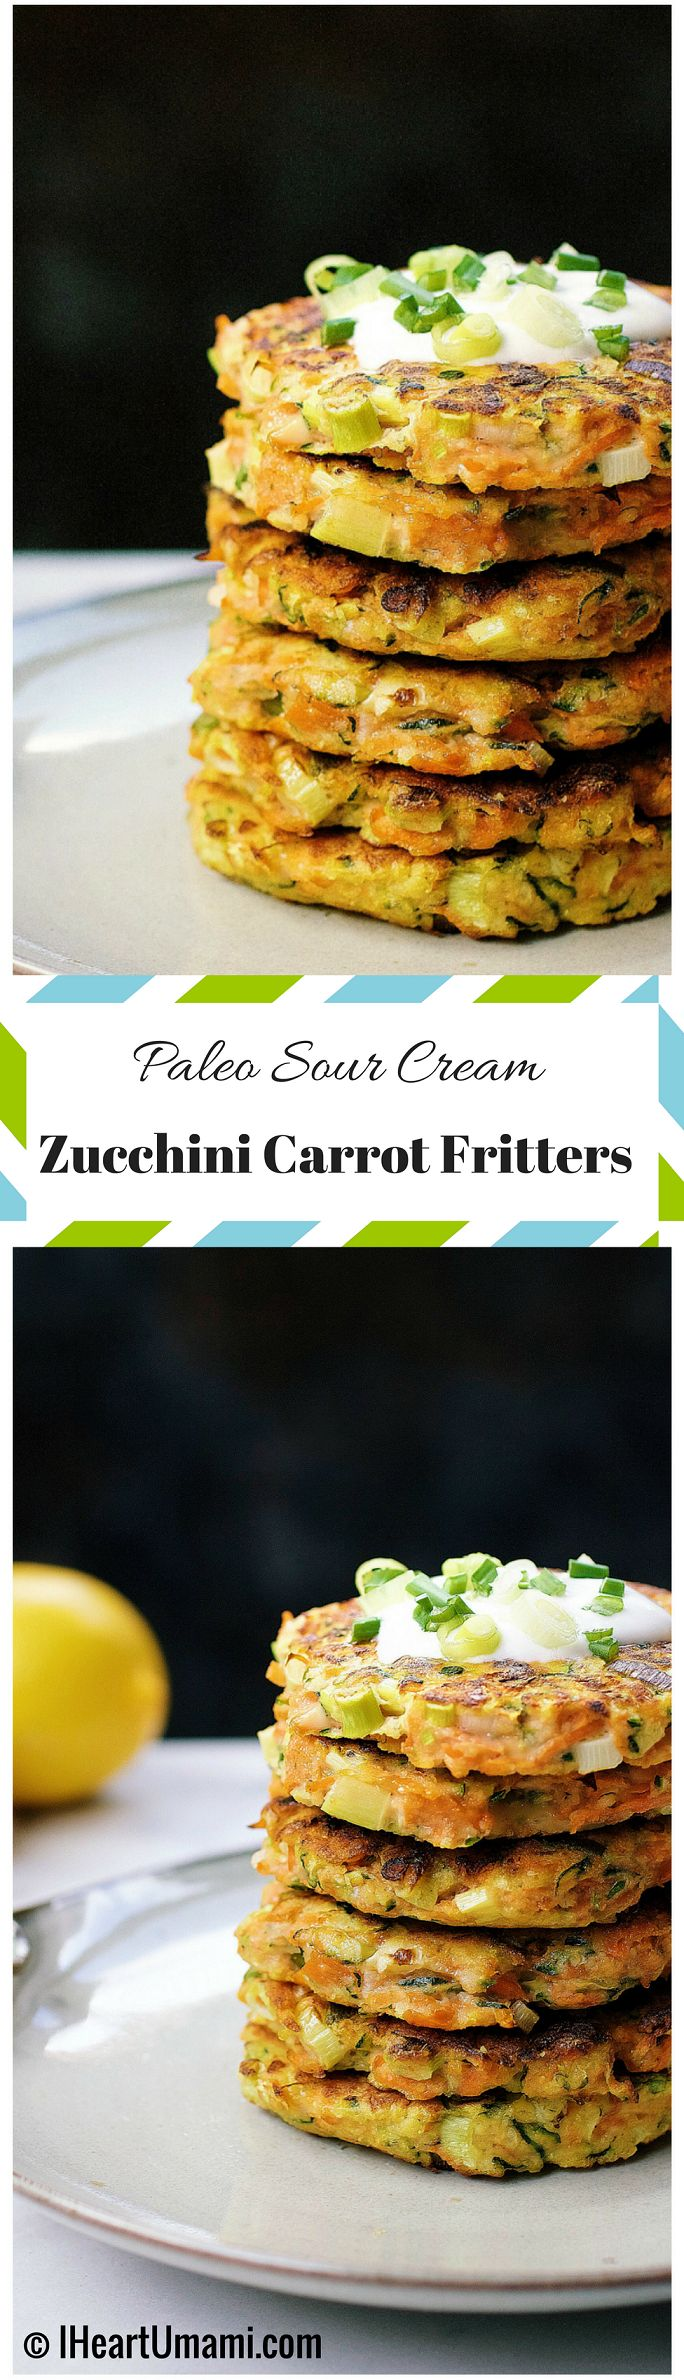 Zucchini Carrot Fritters with Paleo Sour Cream ! Golden crispy Paleo fritters with gluten free and dairy free sour cream. A perfect way to help you eat more vegetables. Follow the pin to download the recipe !